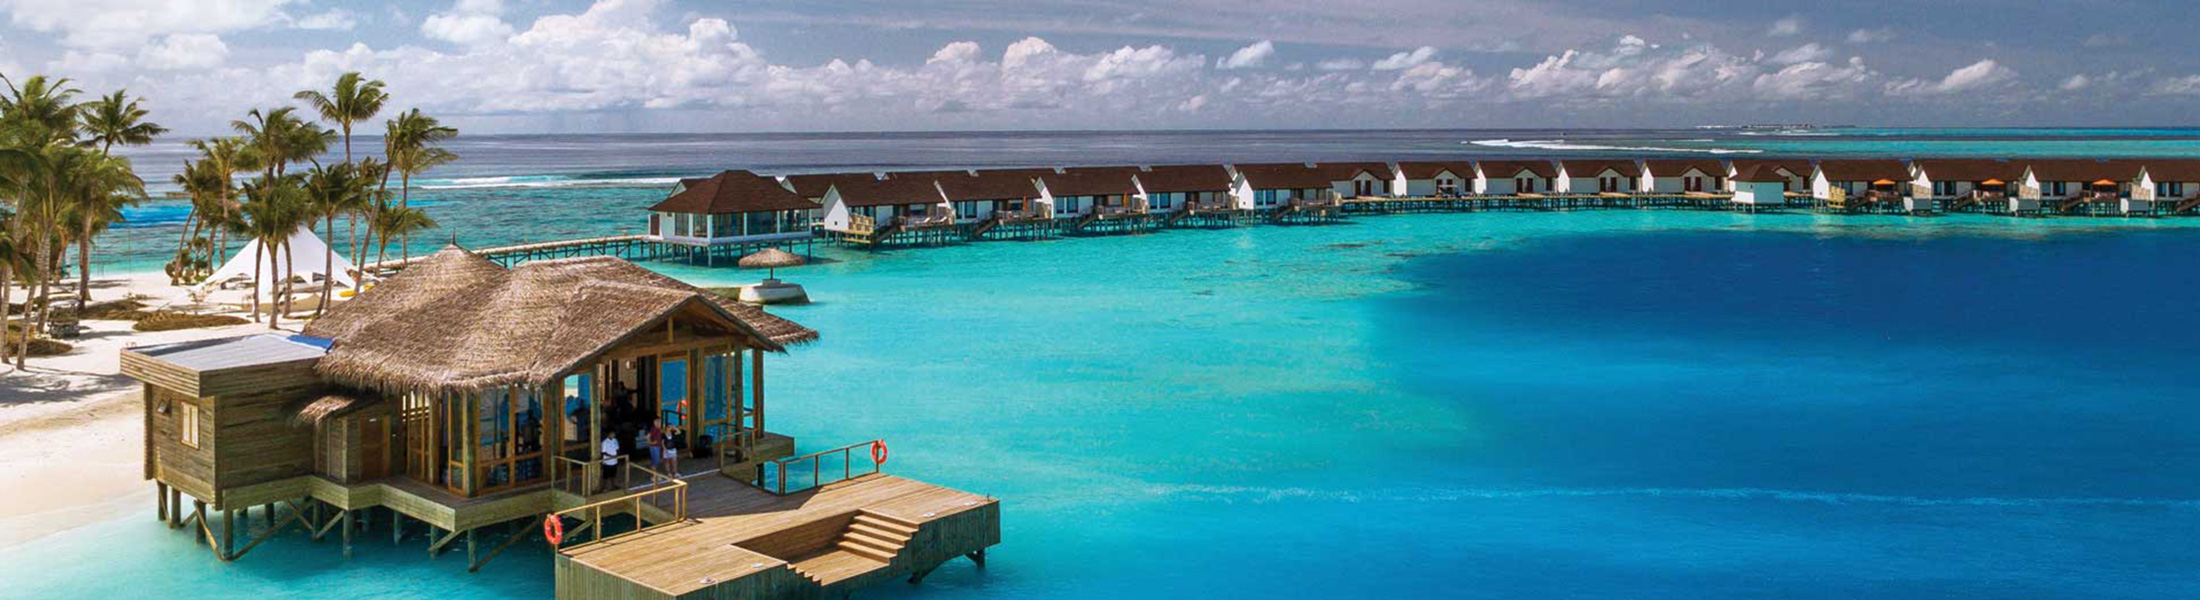 Arrival jetty and water villas at Oblu Select at Sangeli